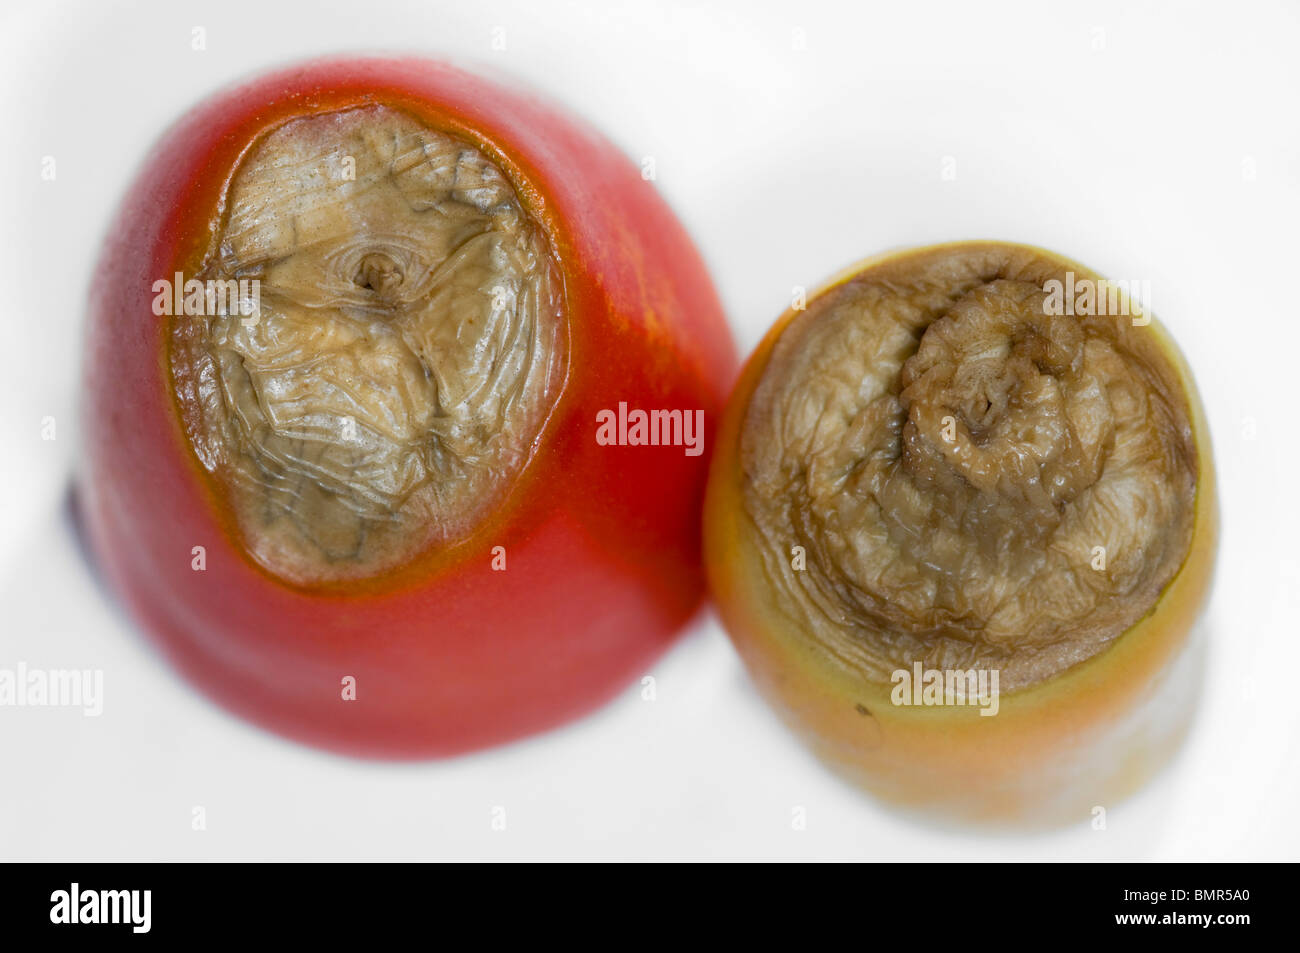 Blossom-end rot on Roma tomatoes - Stock Image